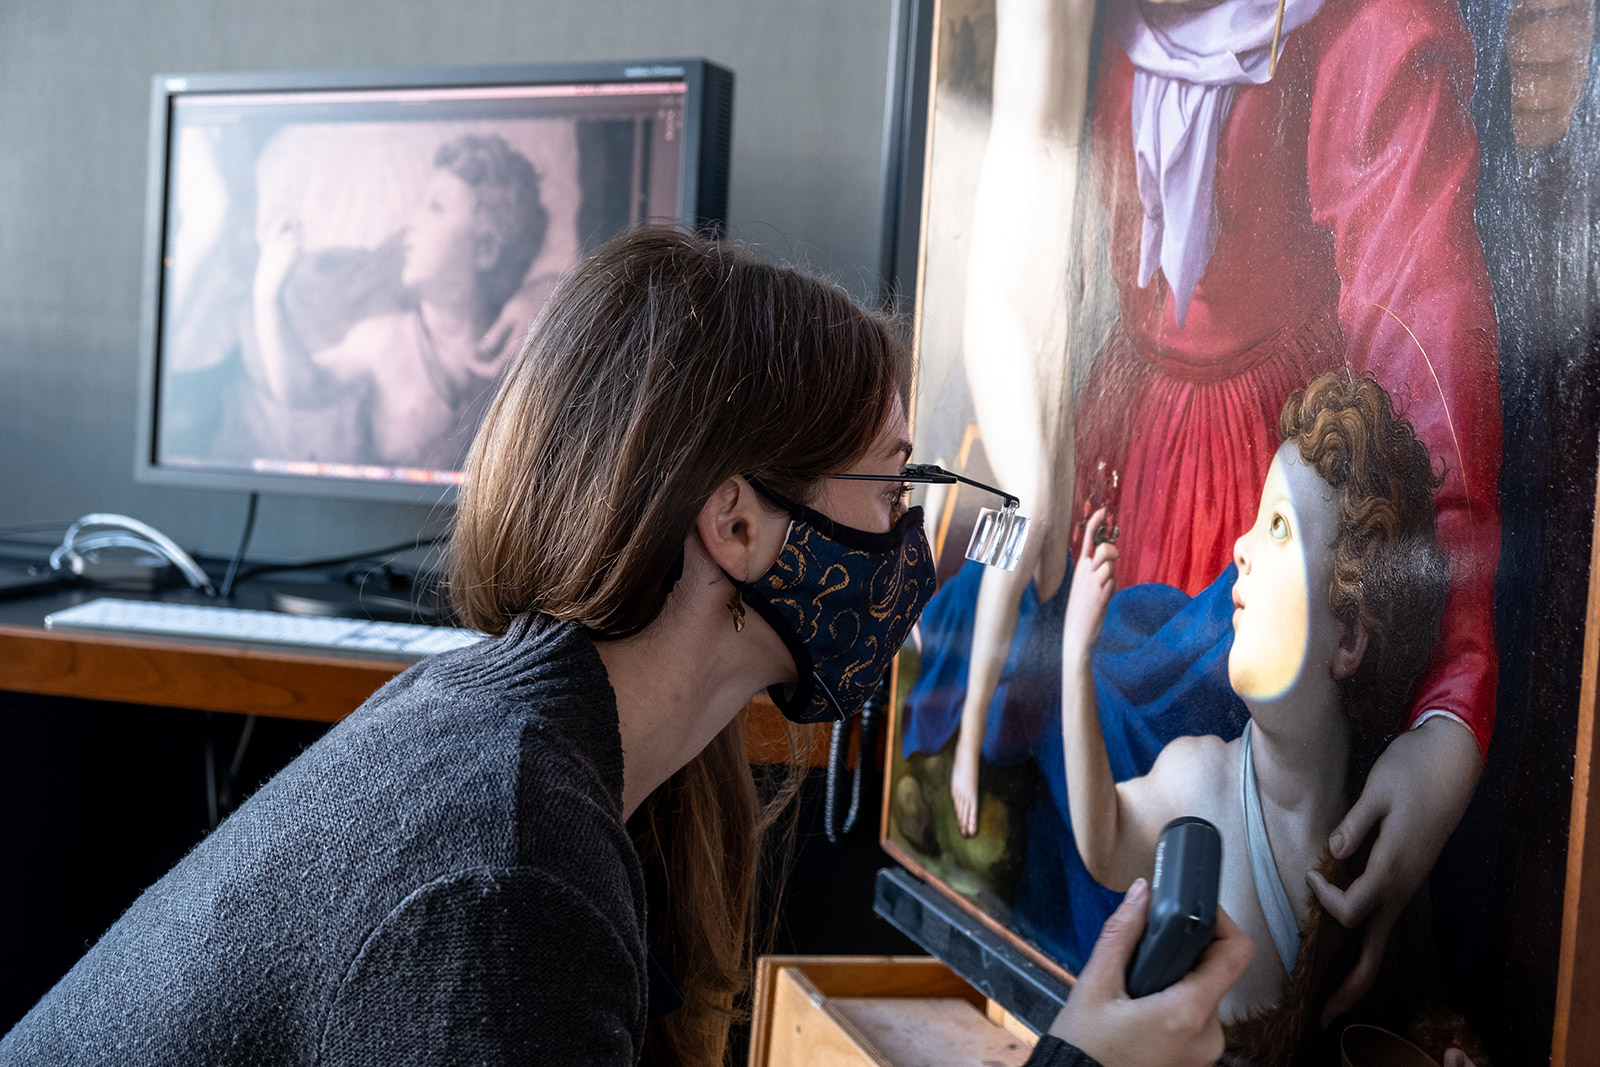 Woman wearing a face mask and glasses with magnification looks closely at a painting of a woman wearing red dress and child with curly hair